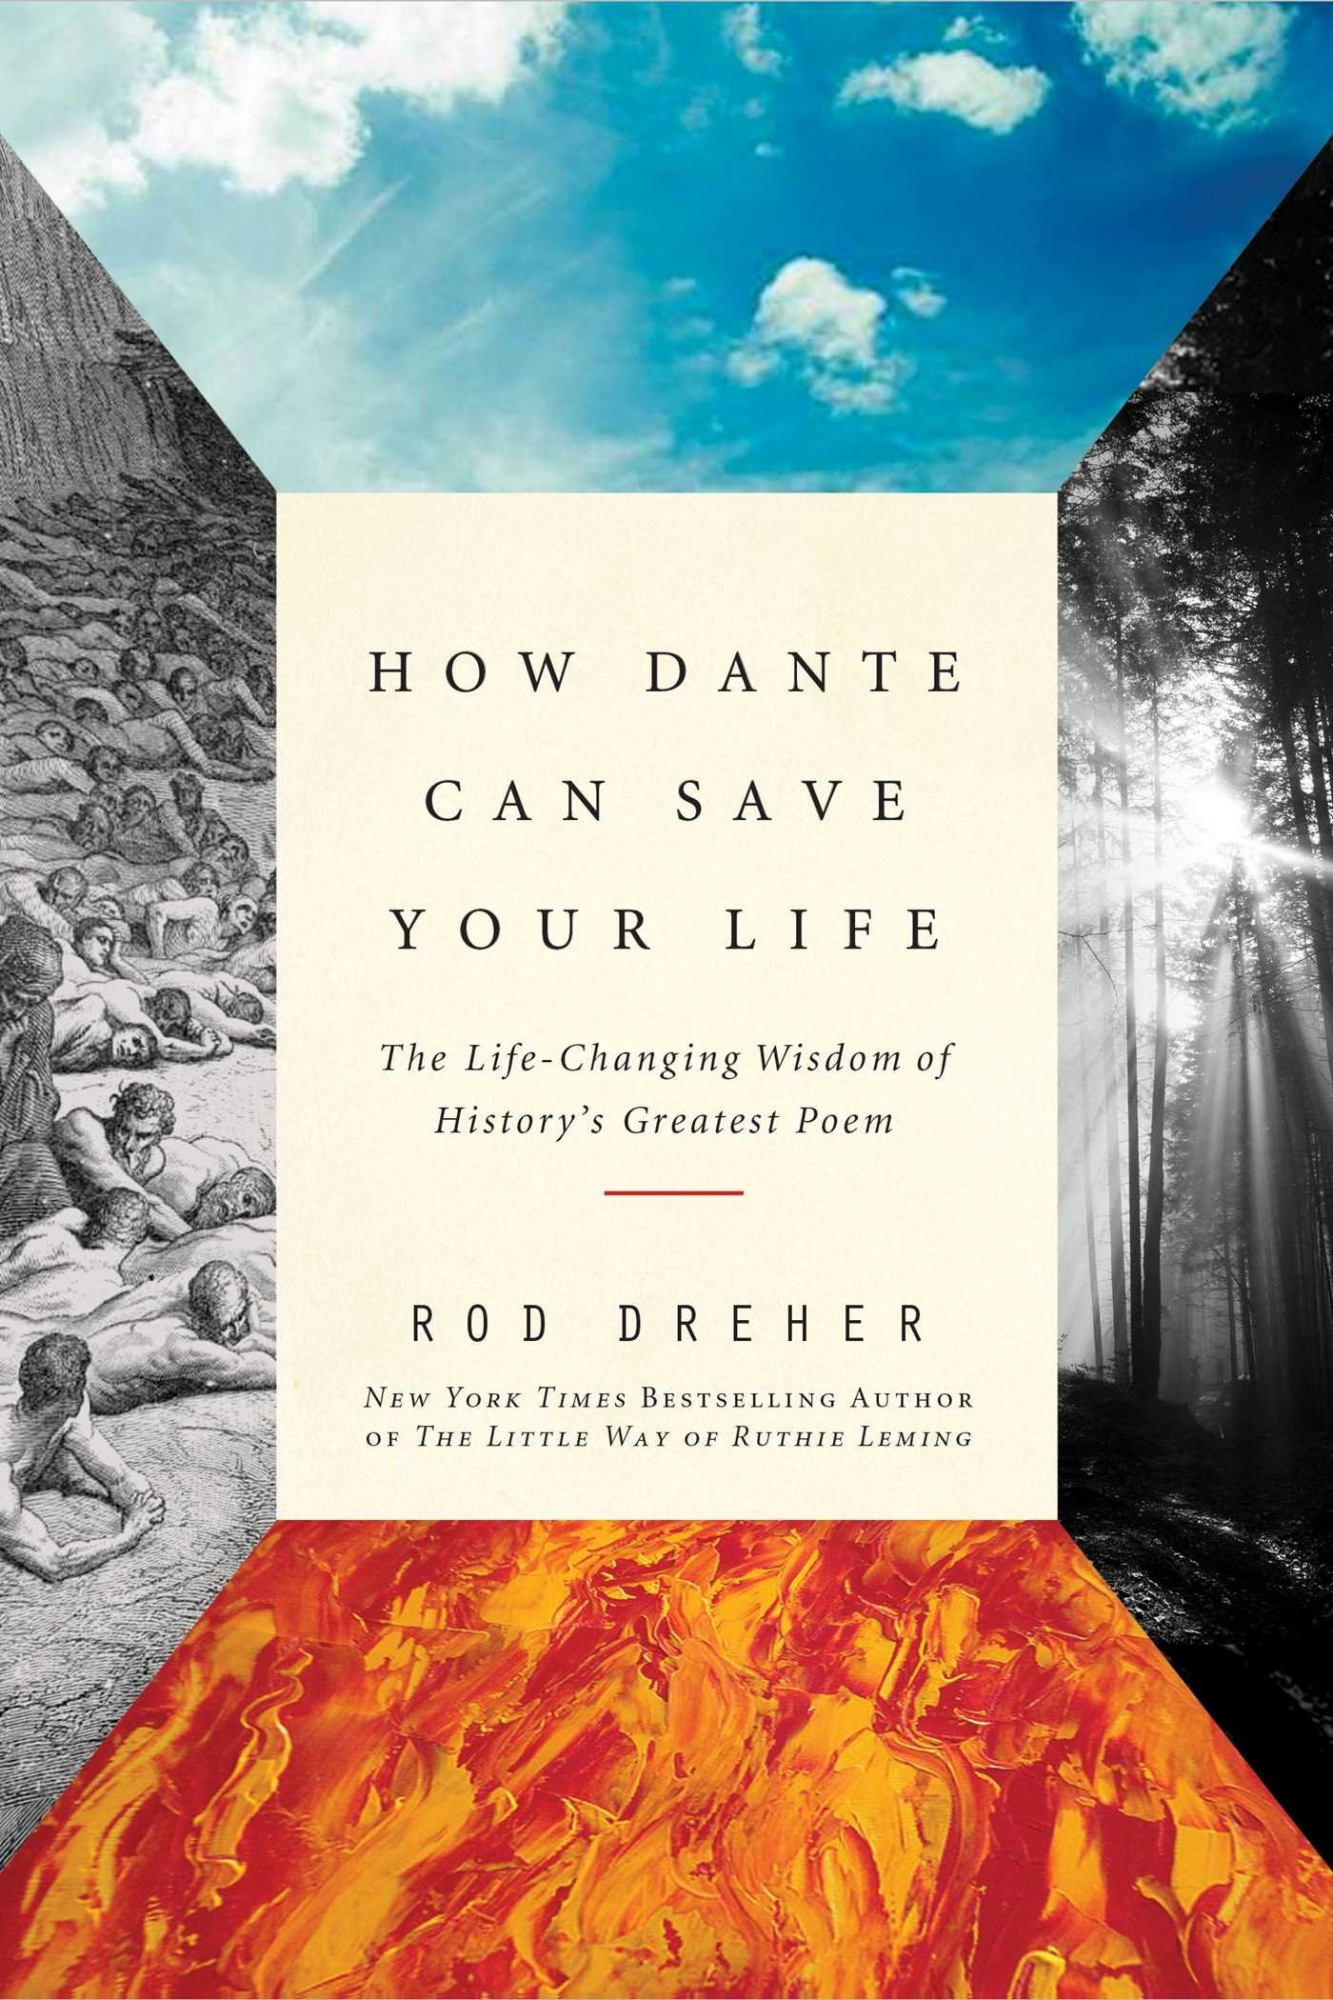 How Dante Can Save Your Life: The Life-Changing Wisdom of History's Greatest Poem by Rod Dreher, ISBN: 9781682450734